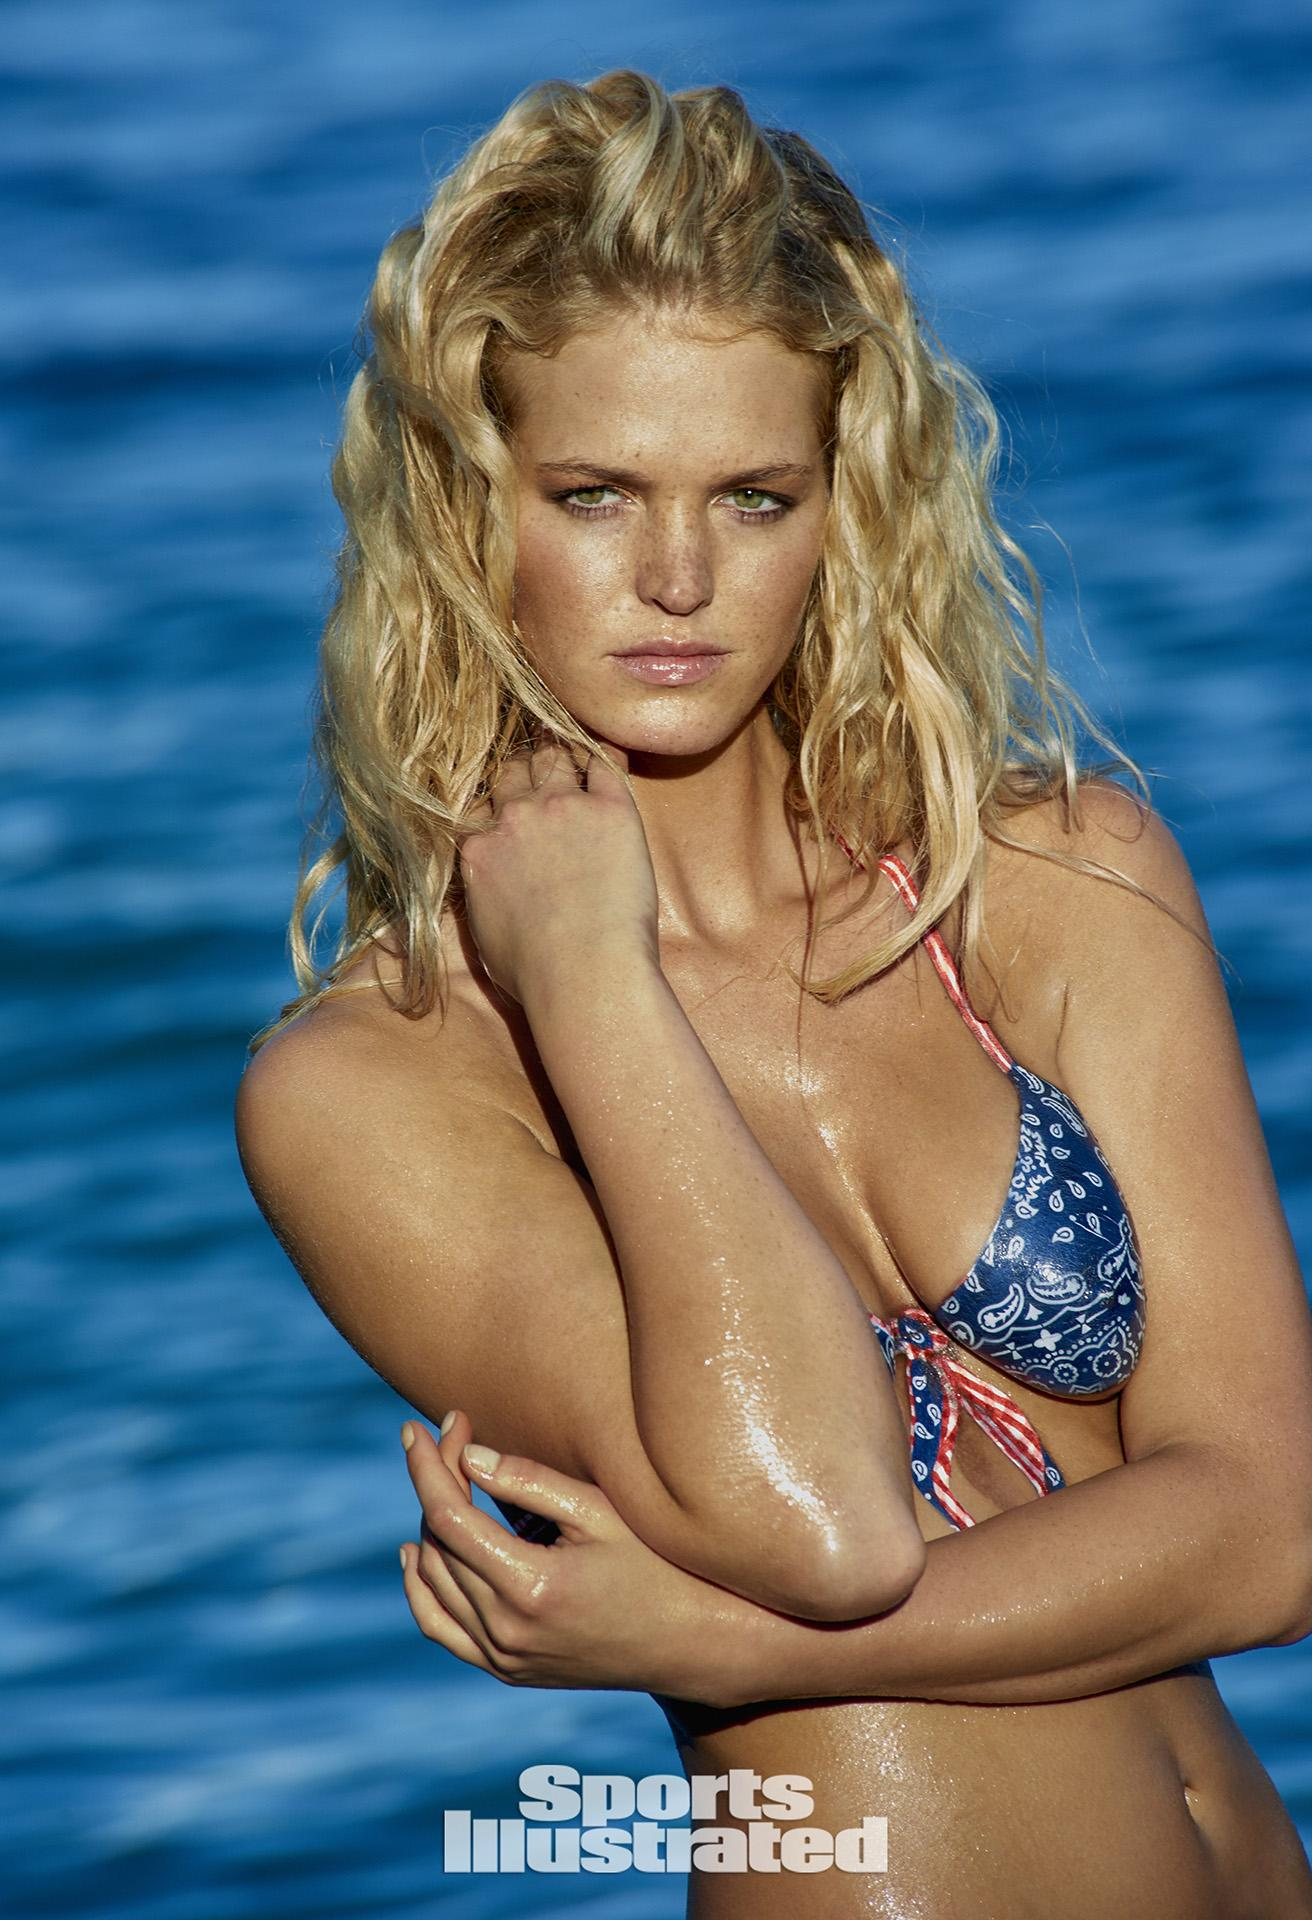 ... Swimsuit Body Paint Photos, Sports Illustrated Swimsuit 2015